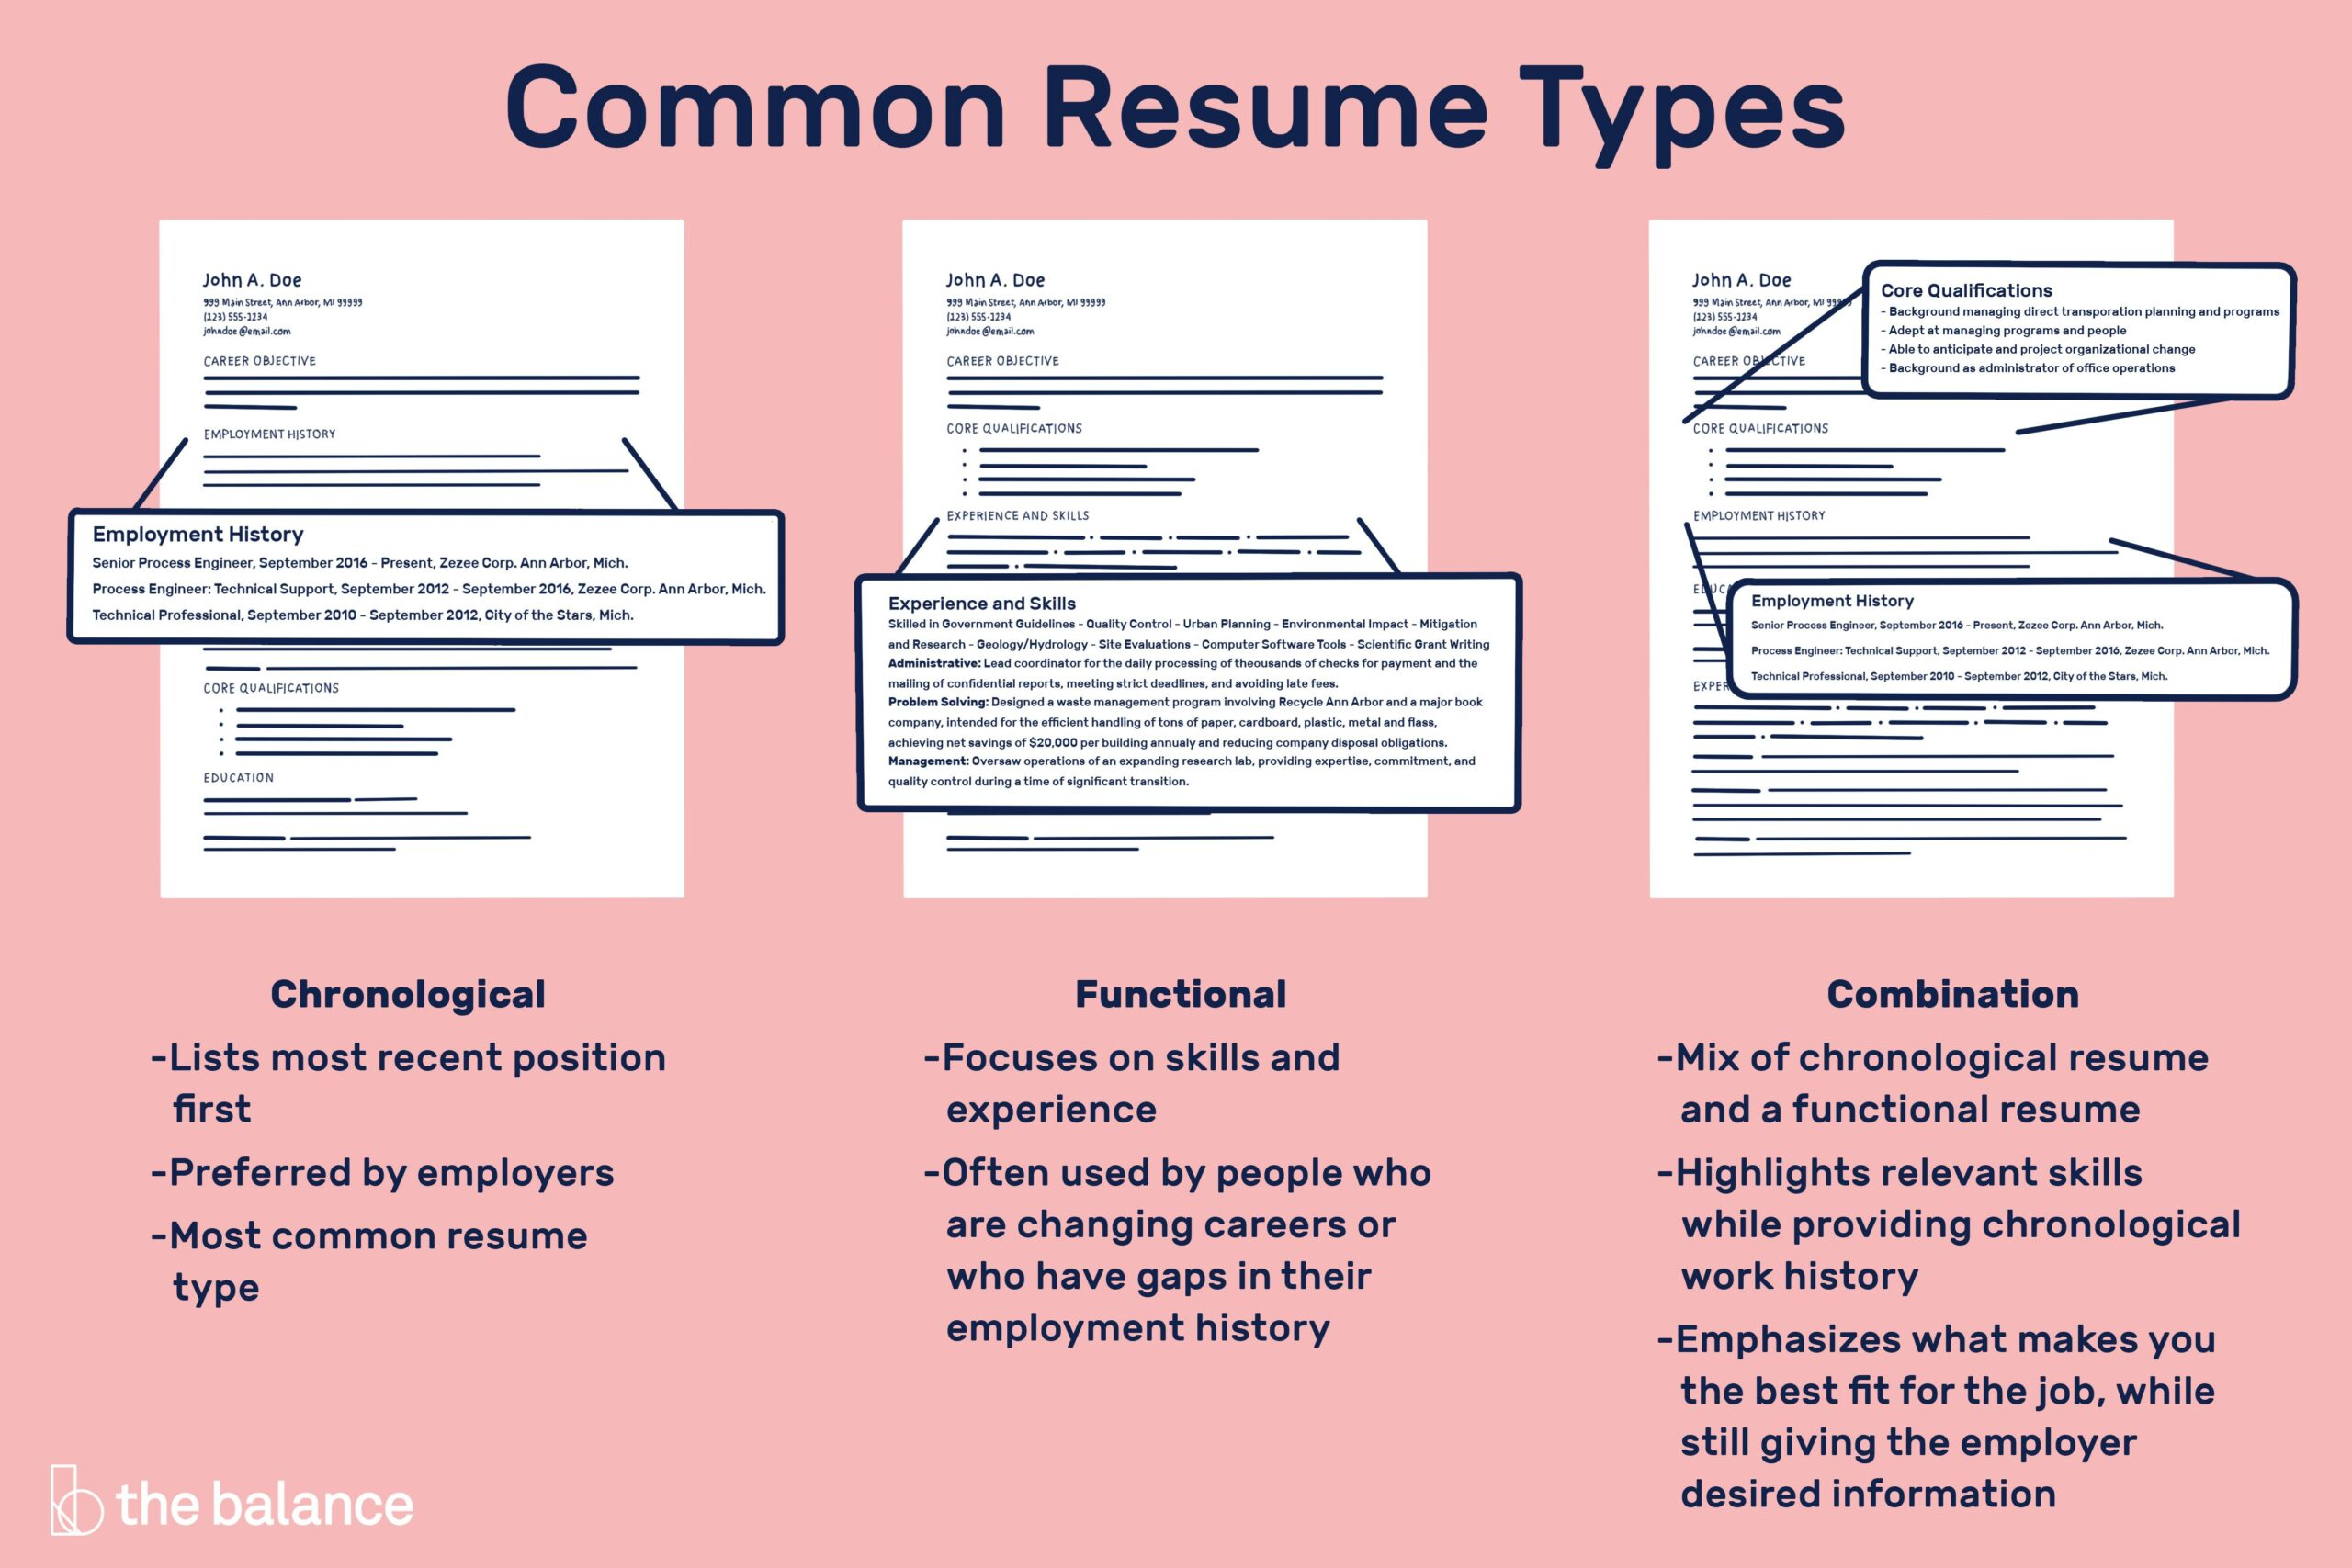 different resume types combination functional chronological 2063235v4 experience with Resume Combination Functional Resume